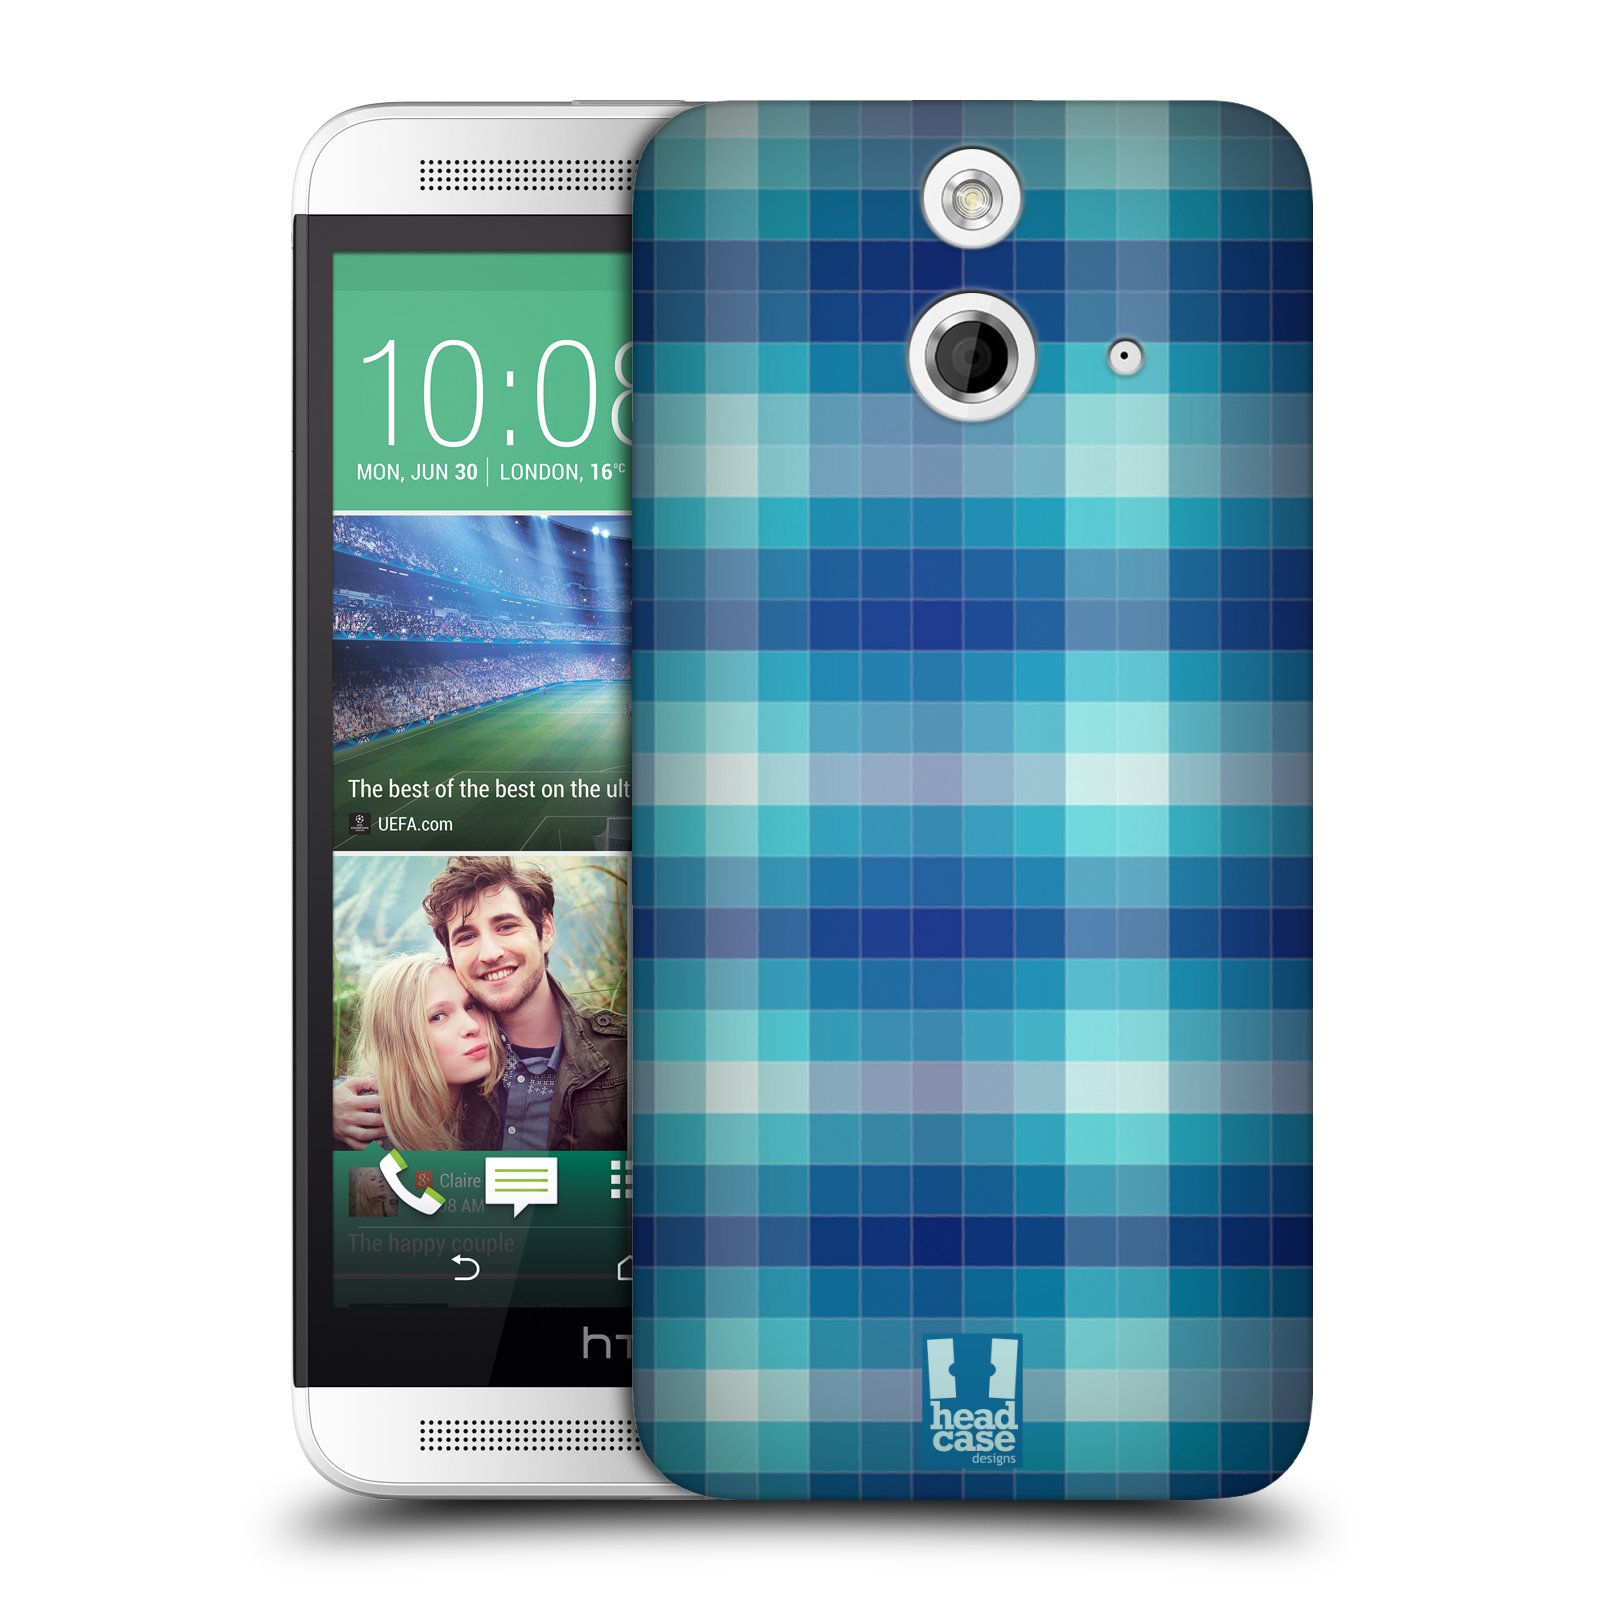 HEAD CASE DESIGNS PIXEL PATTERNS HARD BACK CASE FOR HTC ONE E8 DUAL SIM